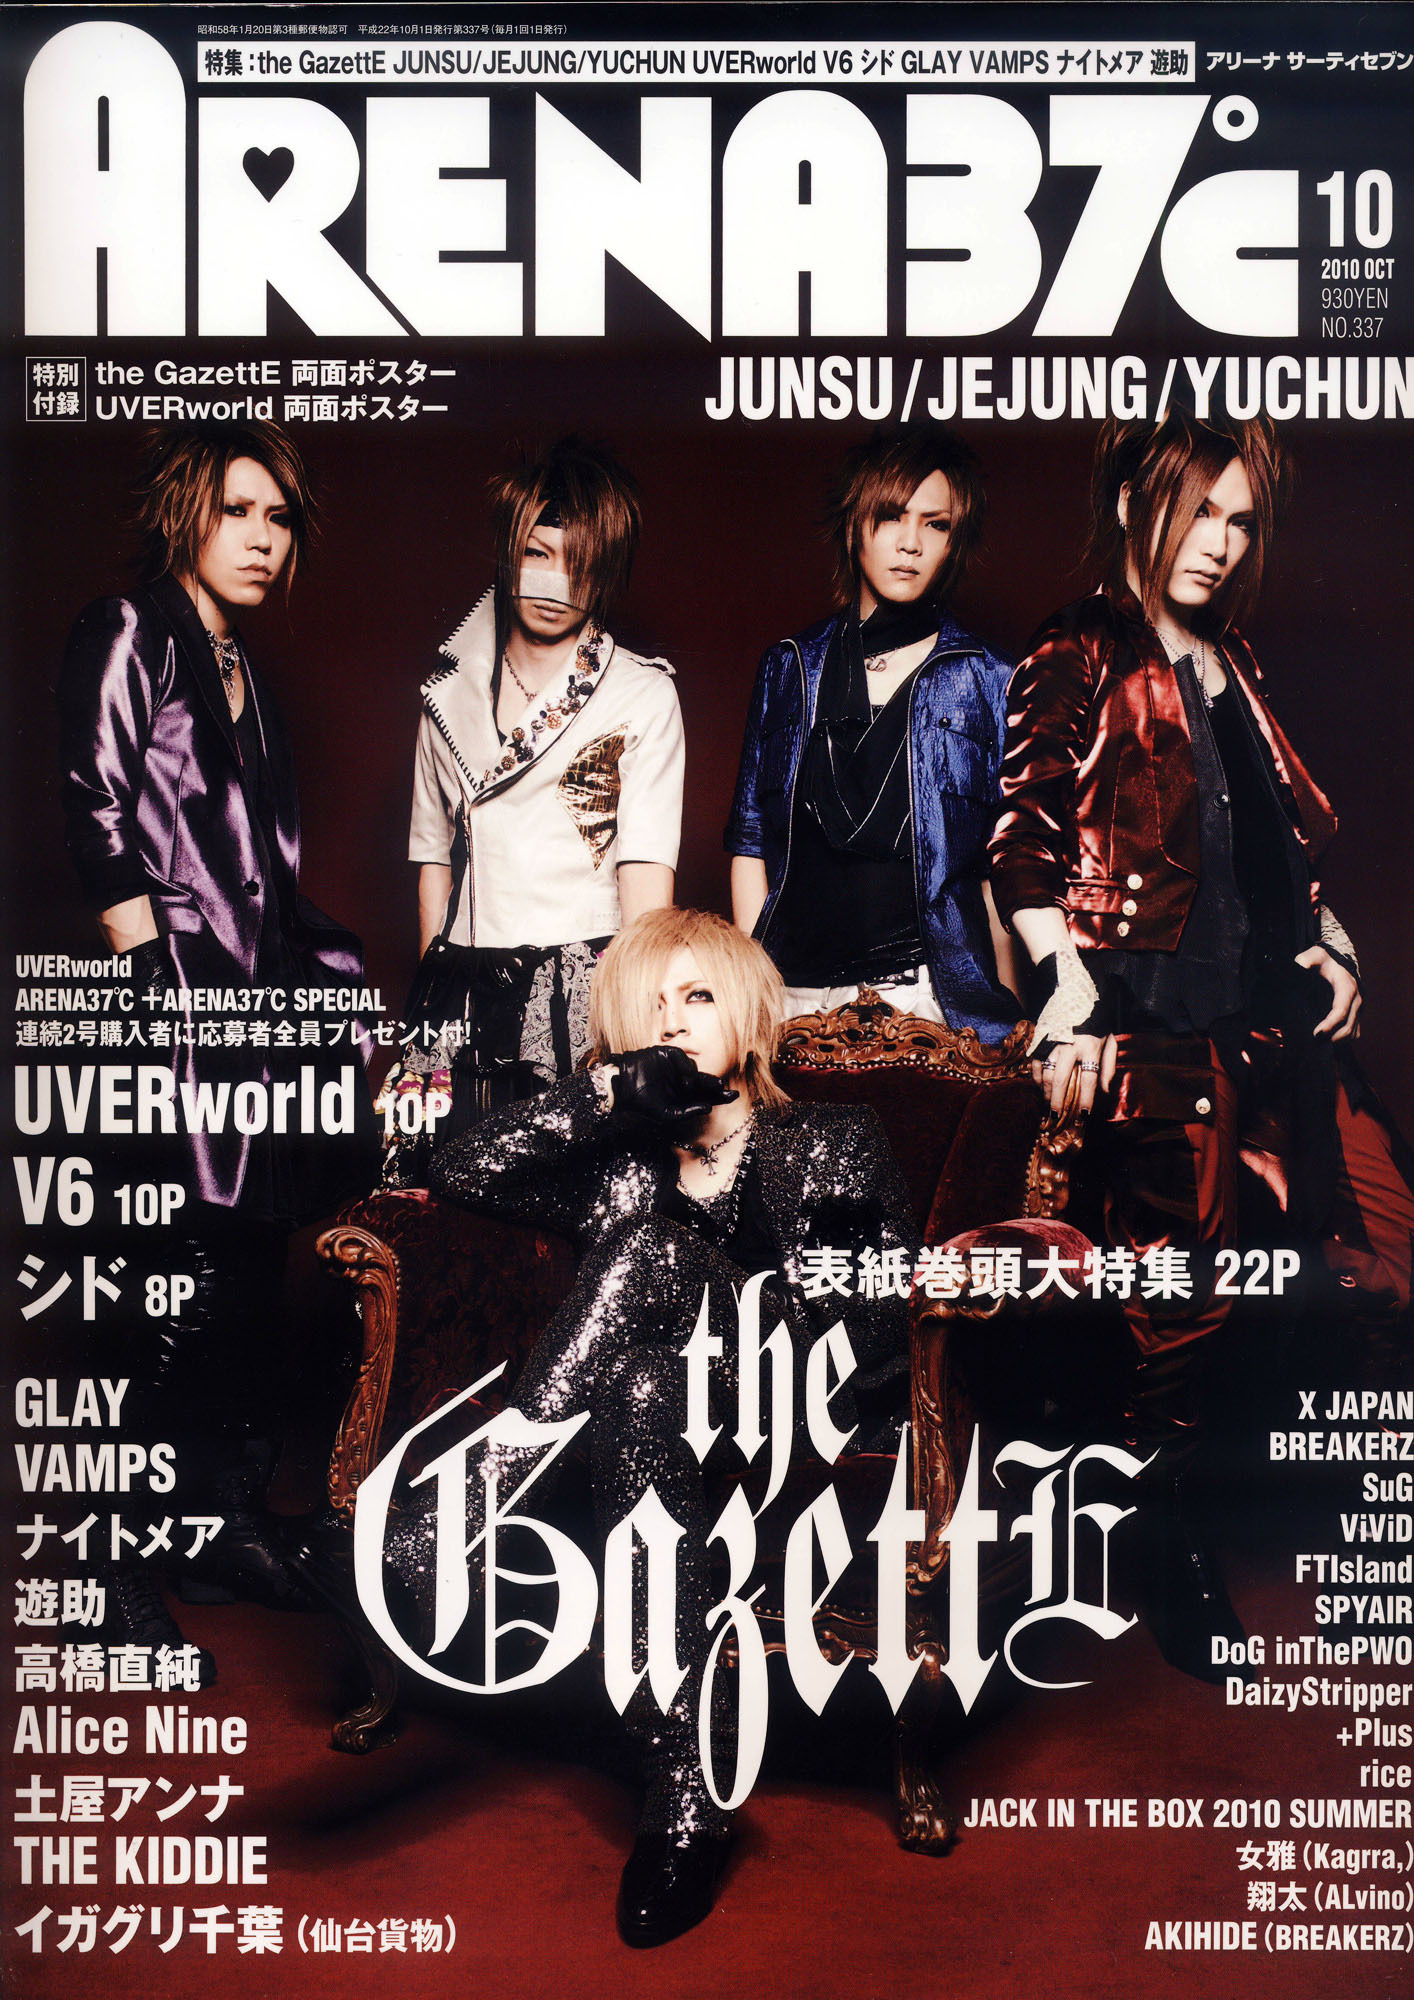 the GazettE Android/iPhone Wallpaper #2565 - Asiachan KPOP Image Board